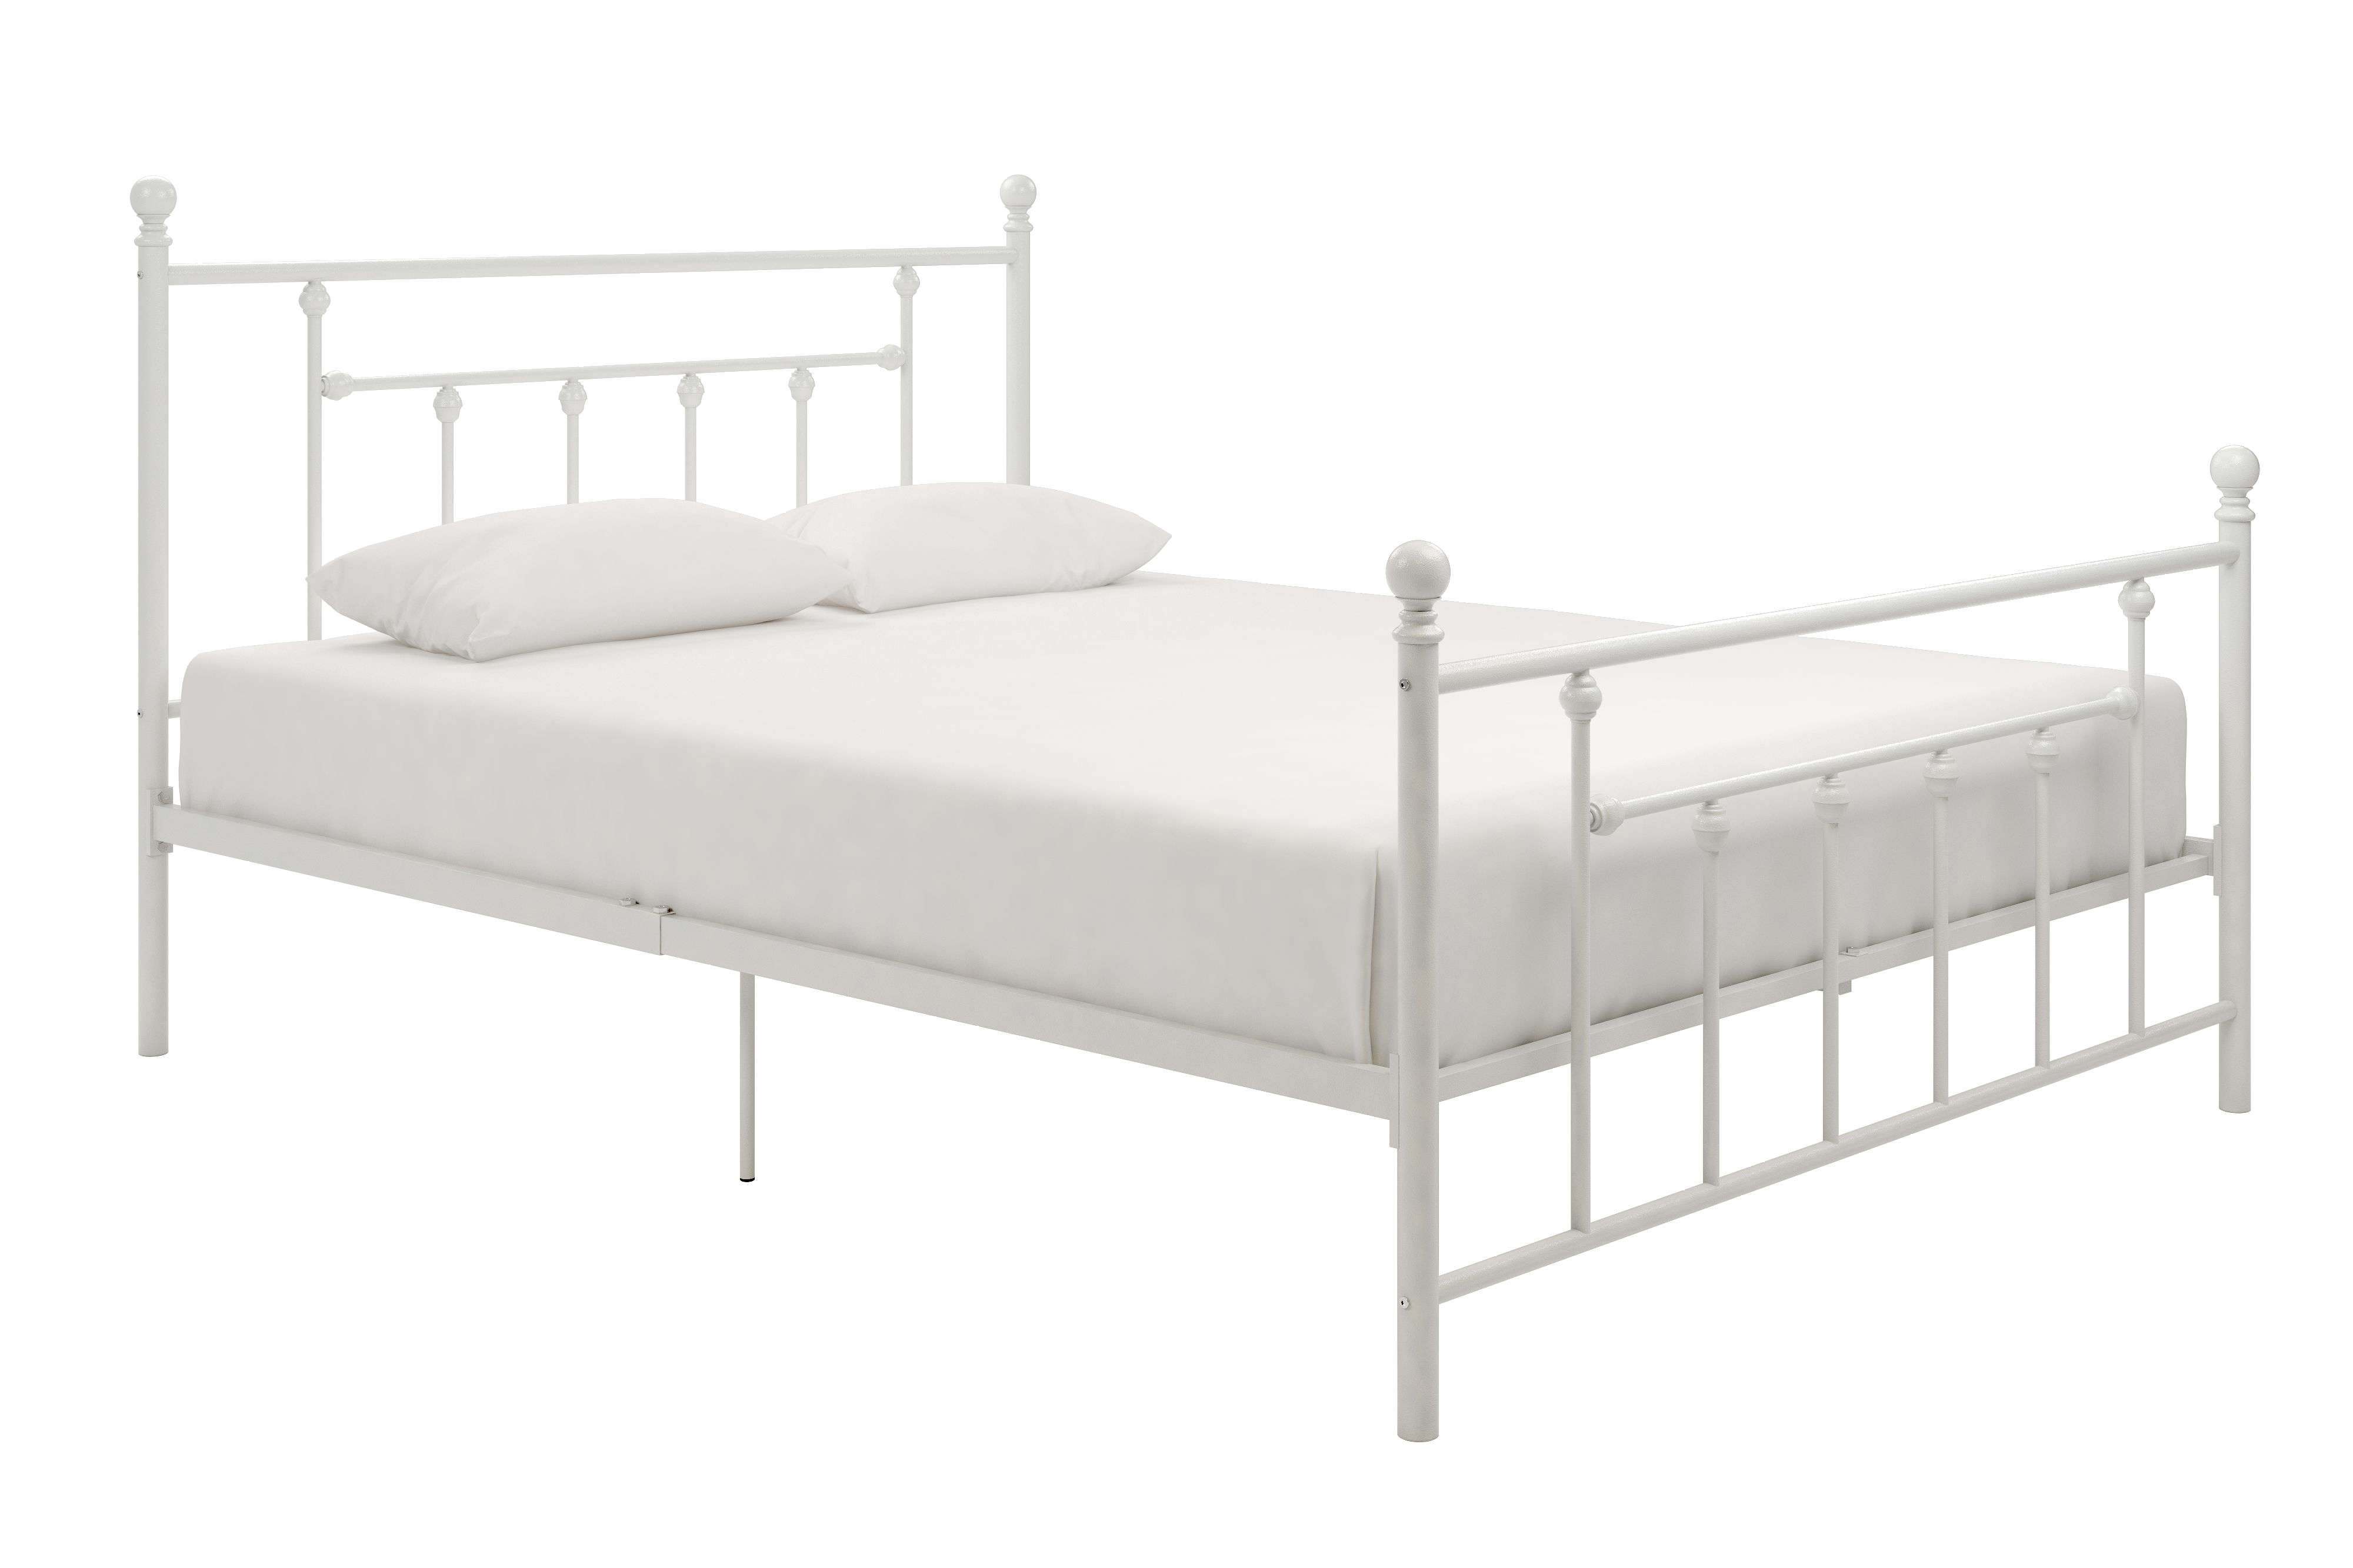 Manila Metal Queen Bed White White Metal Bed White Metal Bed Frame Queen Beds White metal full size bed